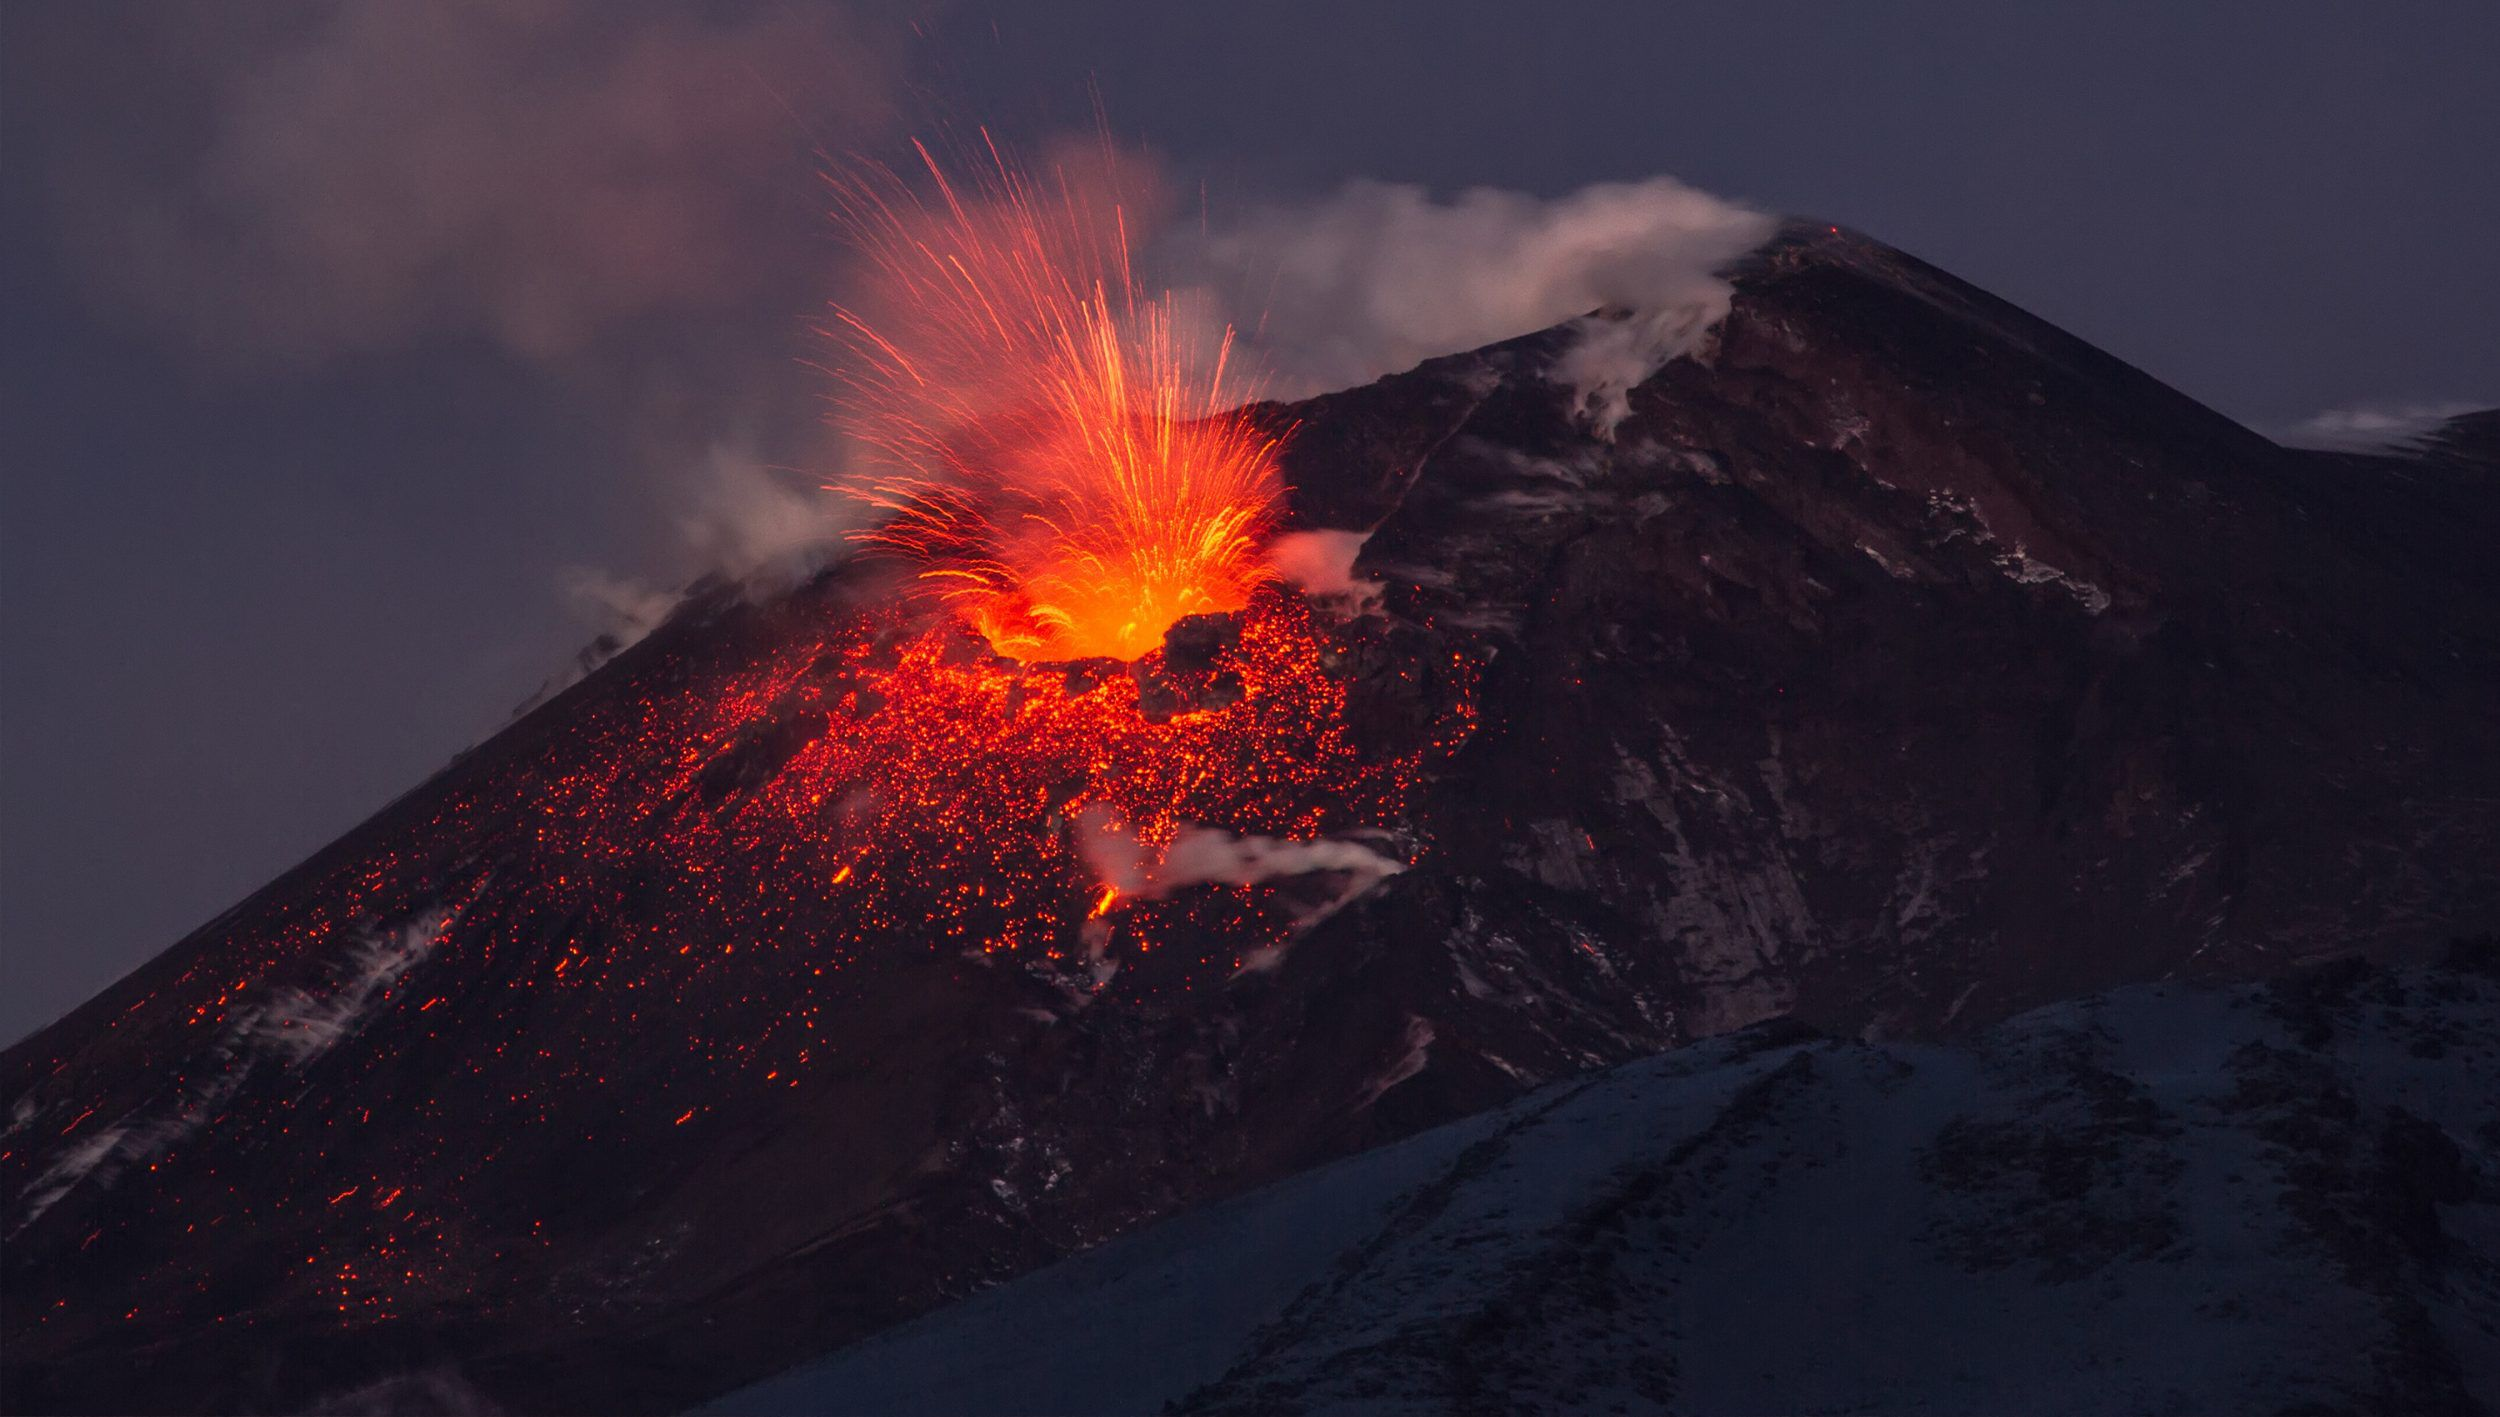 An erupting volcano - the miracle diamond creation